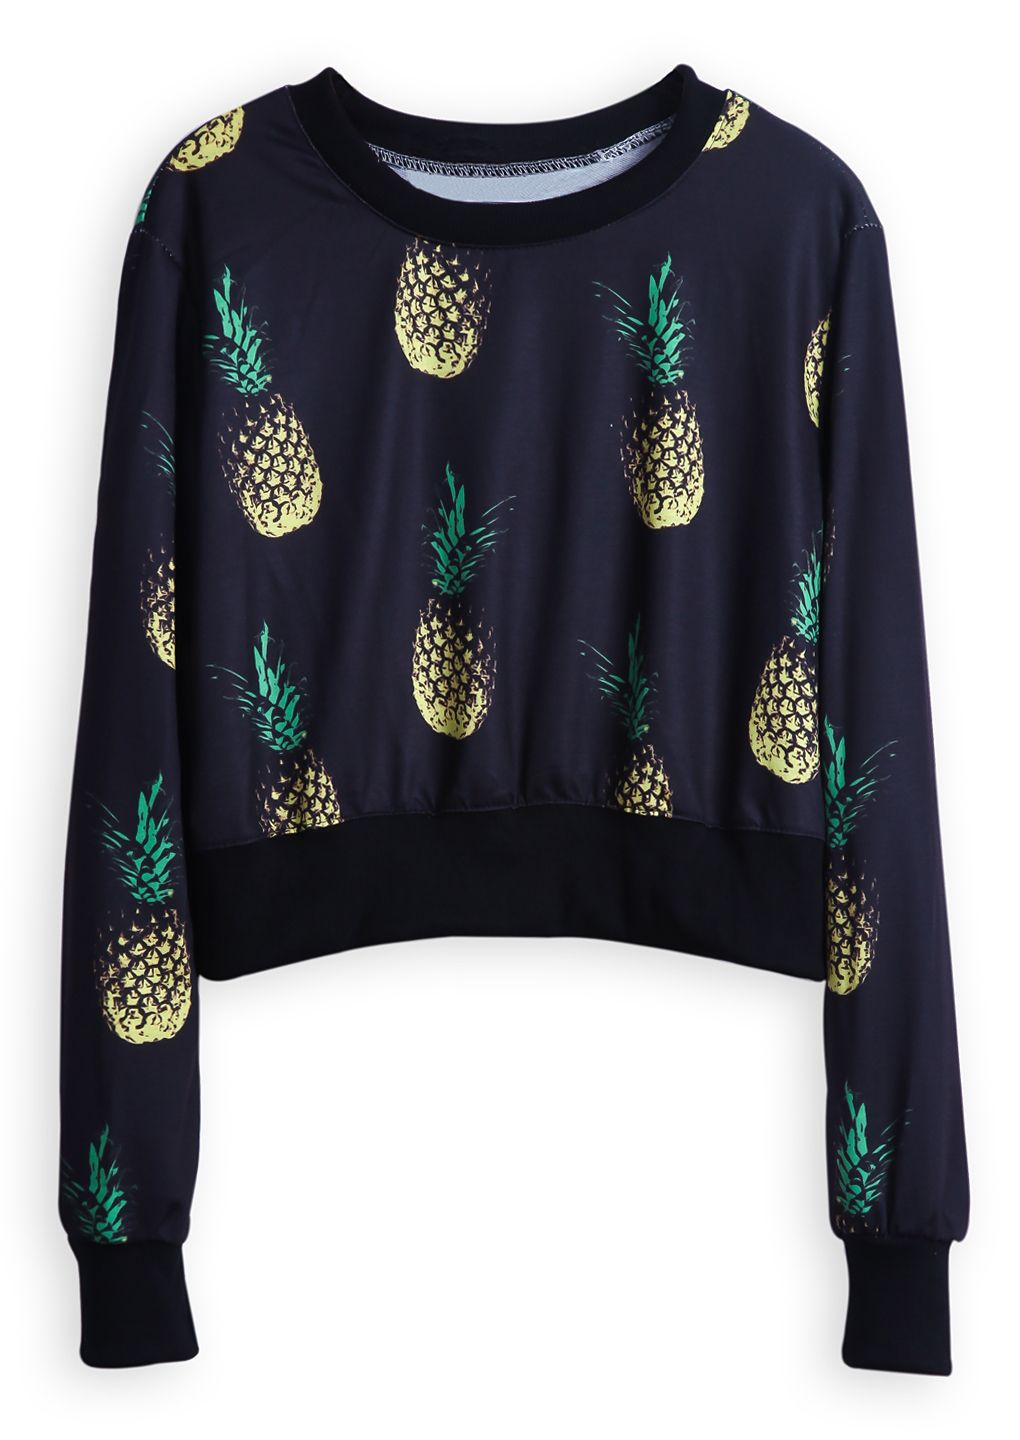 Pin By Veiga On My Style Pineapple Clothes Cool Outfits Fashion [ 1440 x 1020 Pixel ]